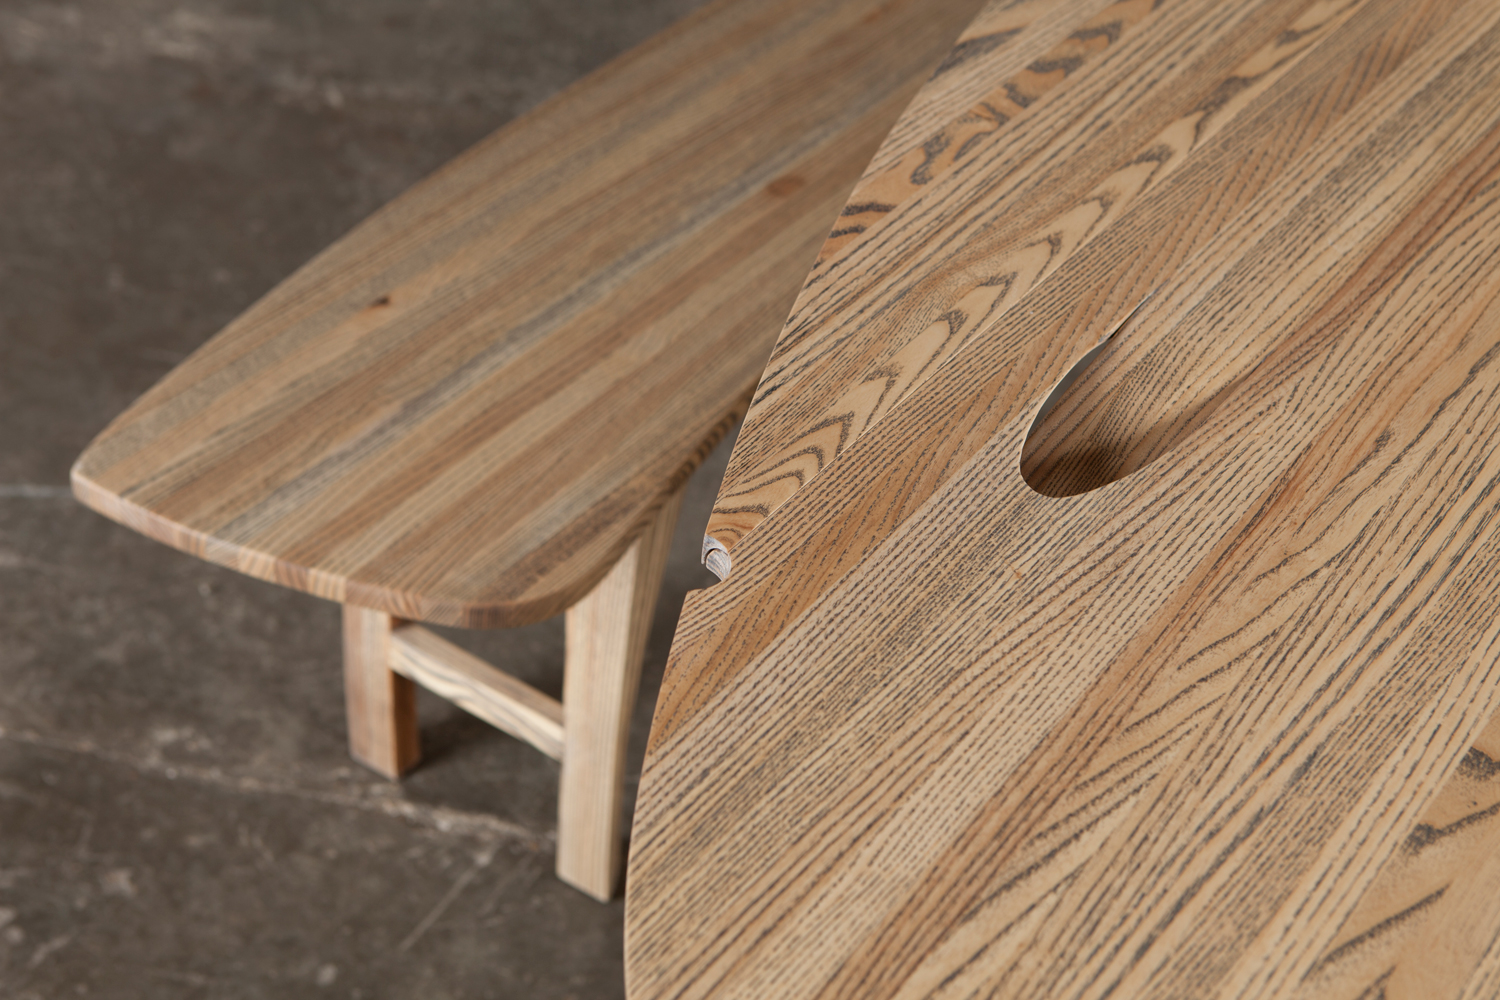 10_Ebony-grained-ash-dining-benches_4.jpg